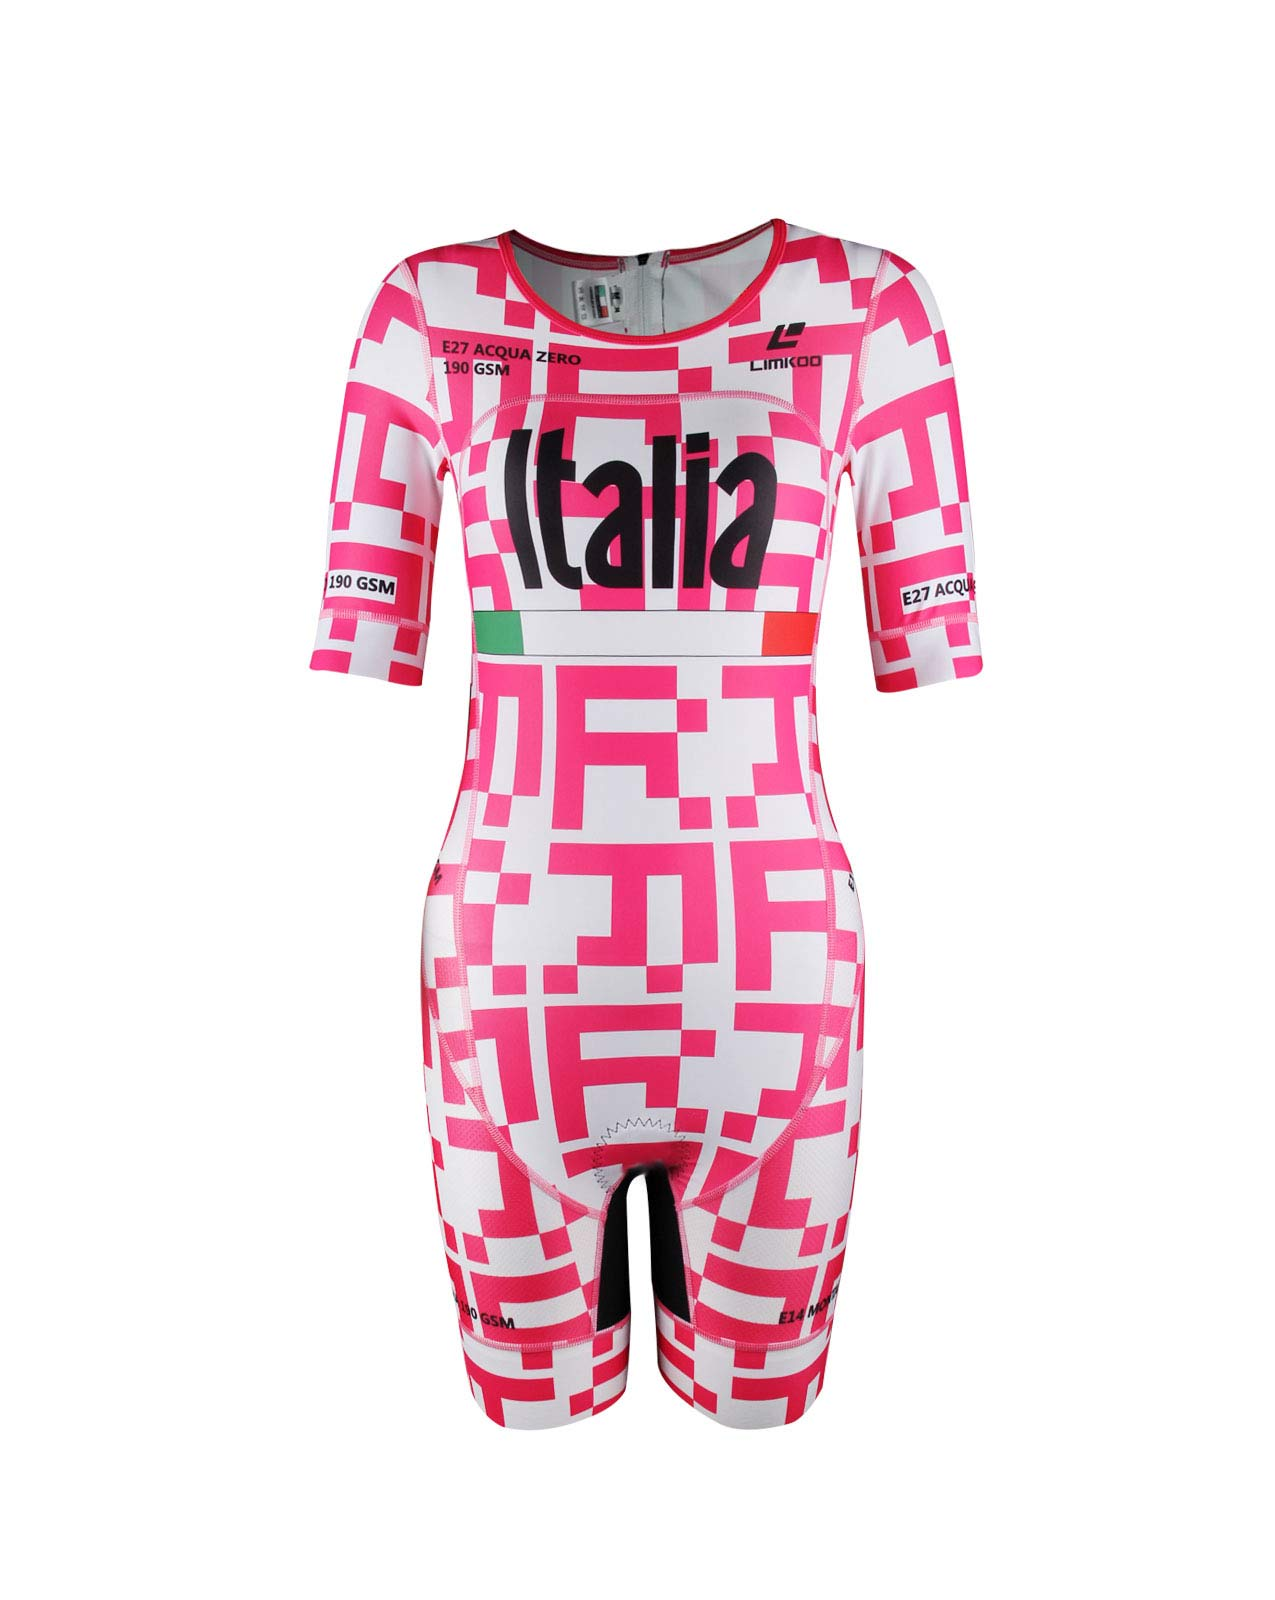 Italian ACQUA ZERO Short Sleeve Tri Suit